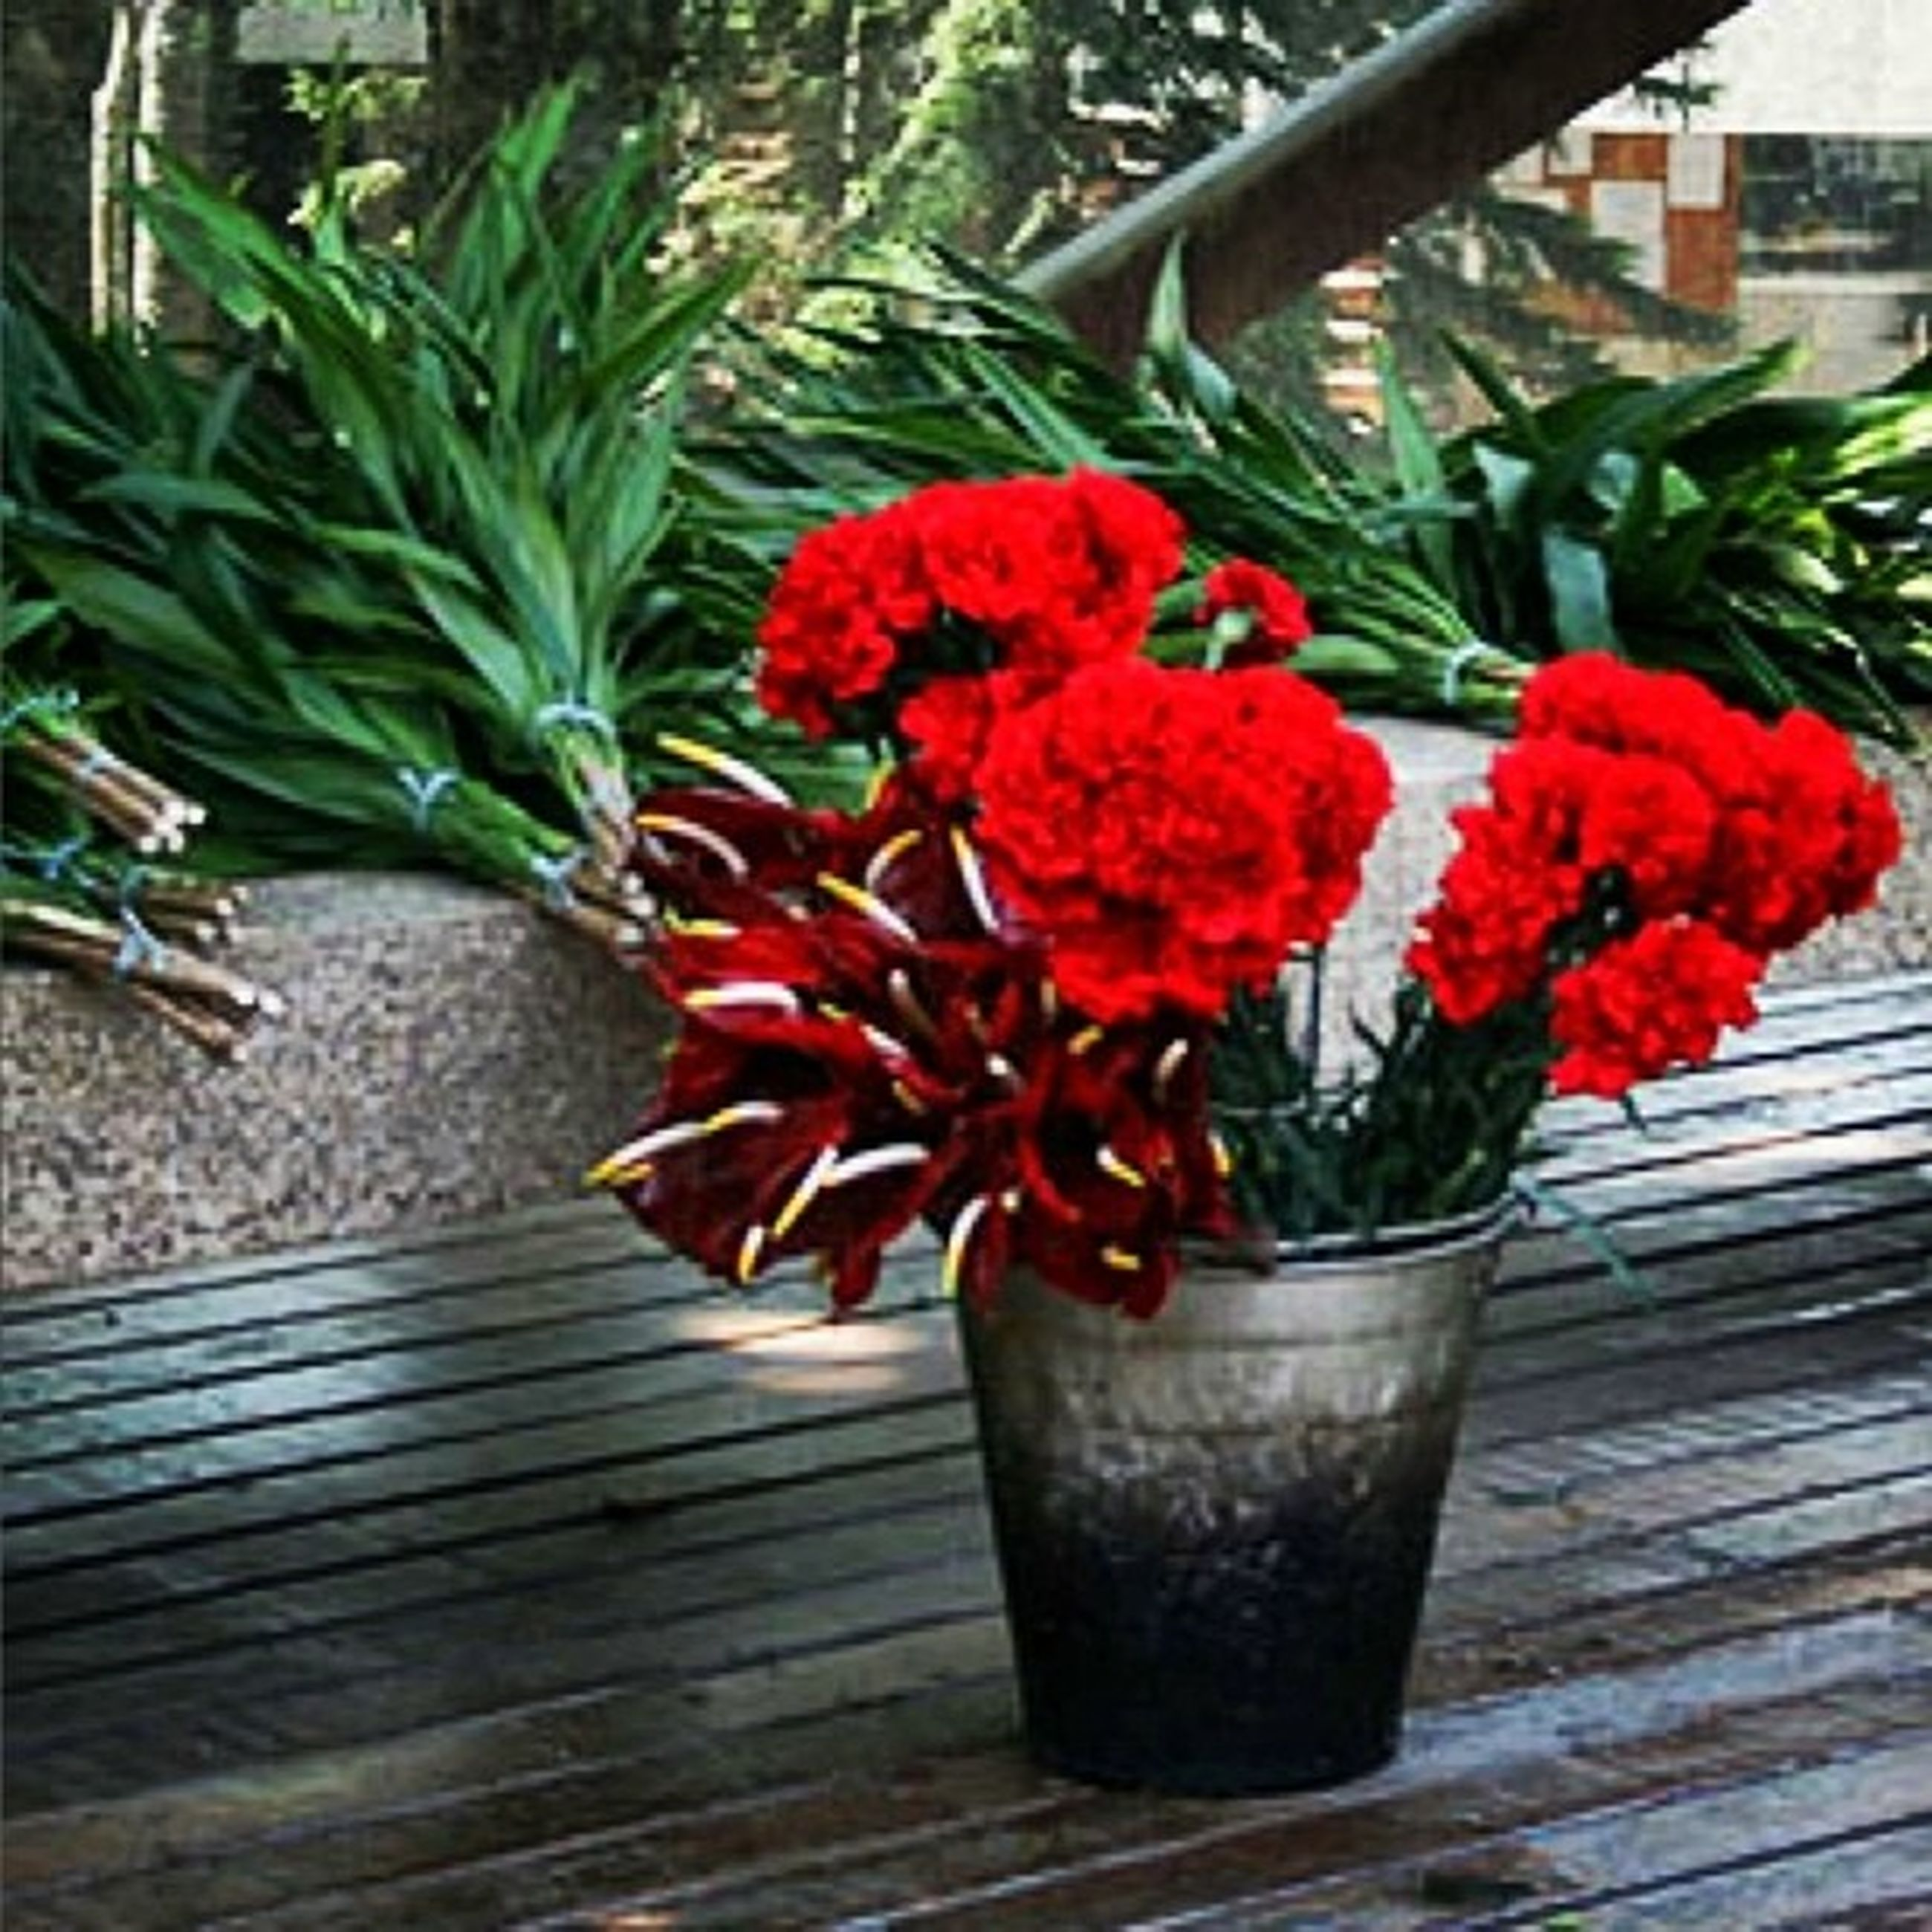 flower, potted plant, freshness, red, plant, growth, fragility, flower pot, leaf, vase, petal, nature, beauty in nature, table, flower head, close-up, front or back yard, no people, botany, in bloom